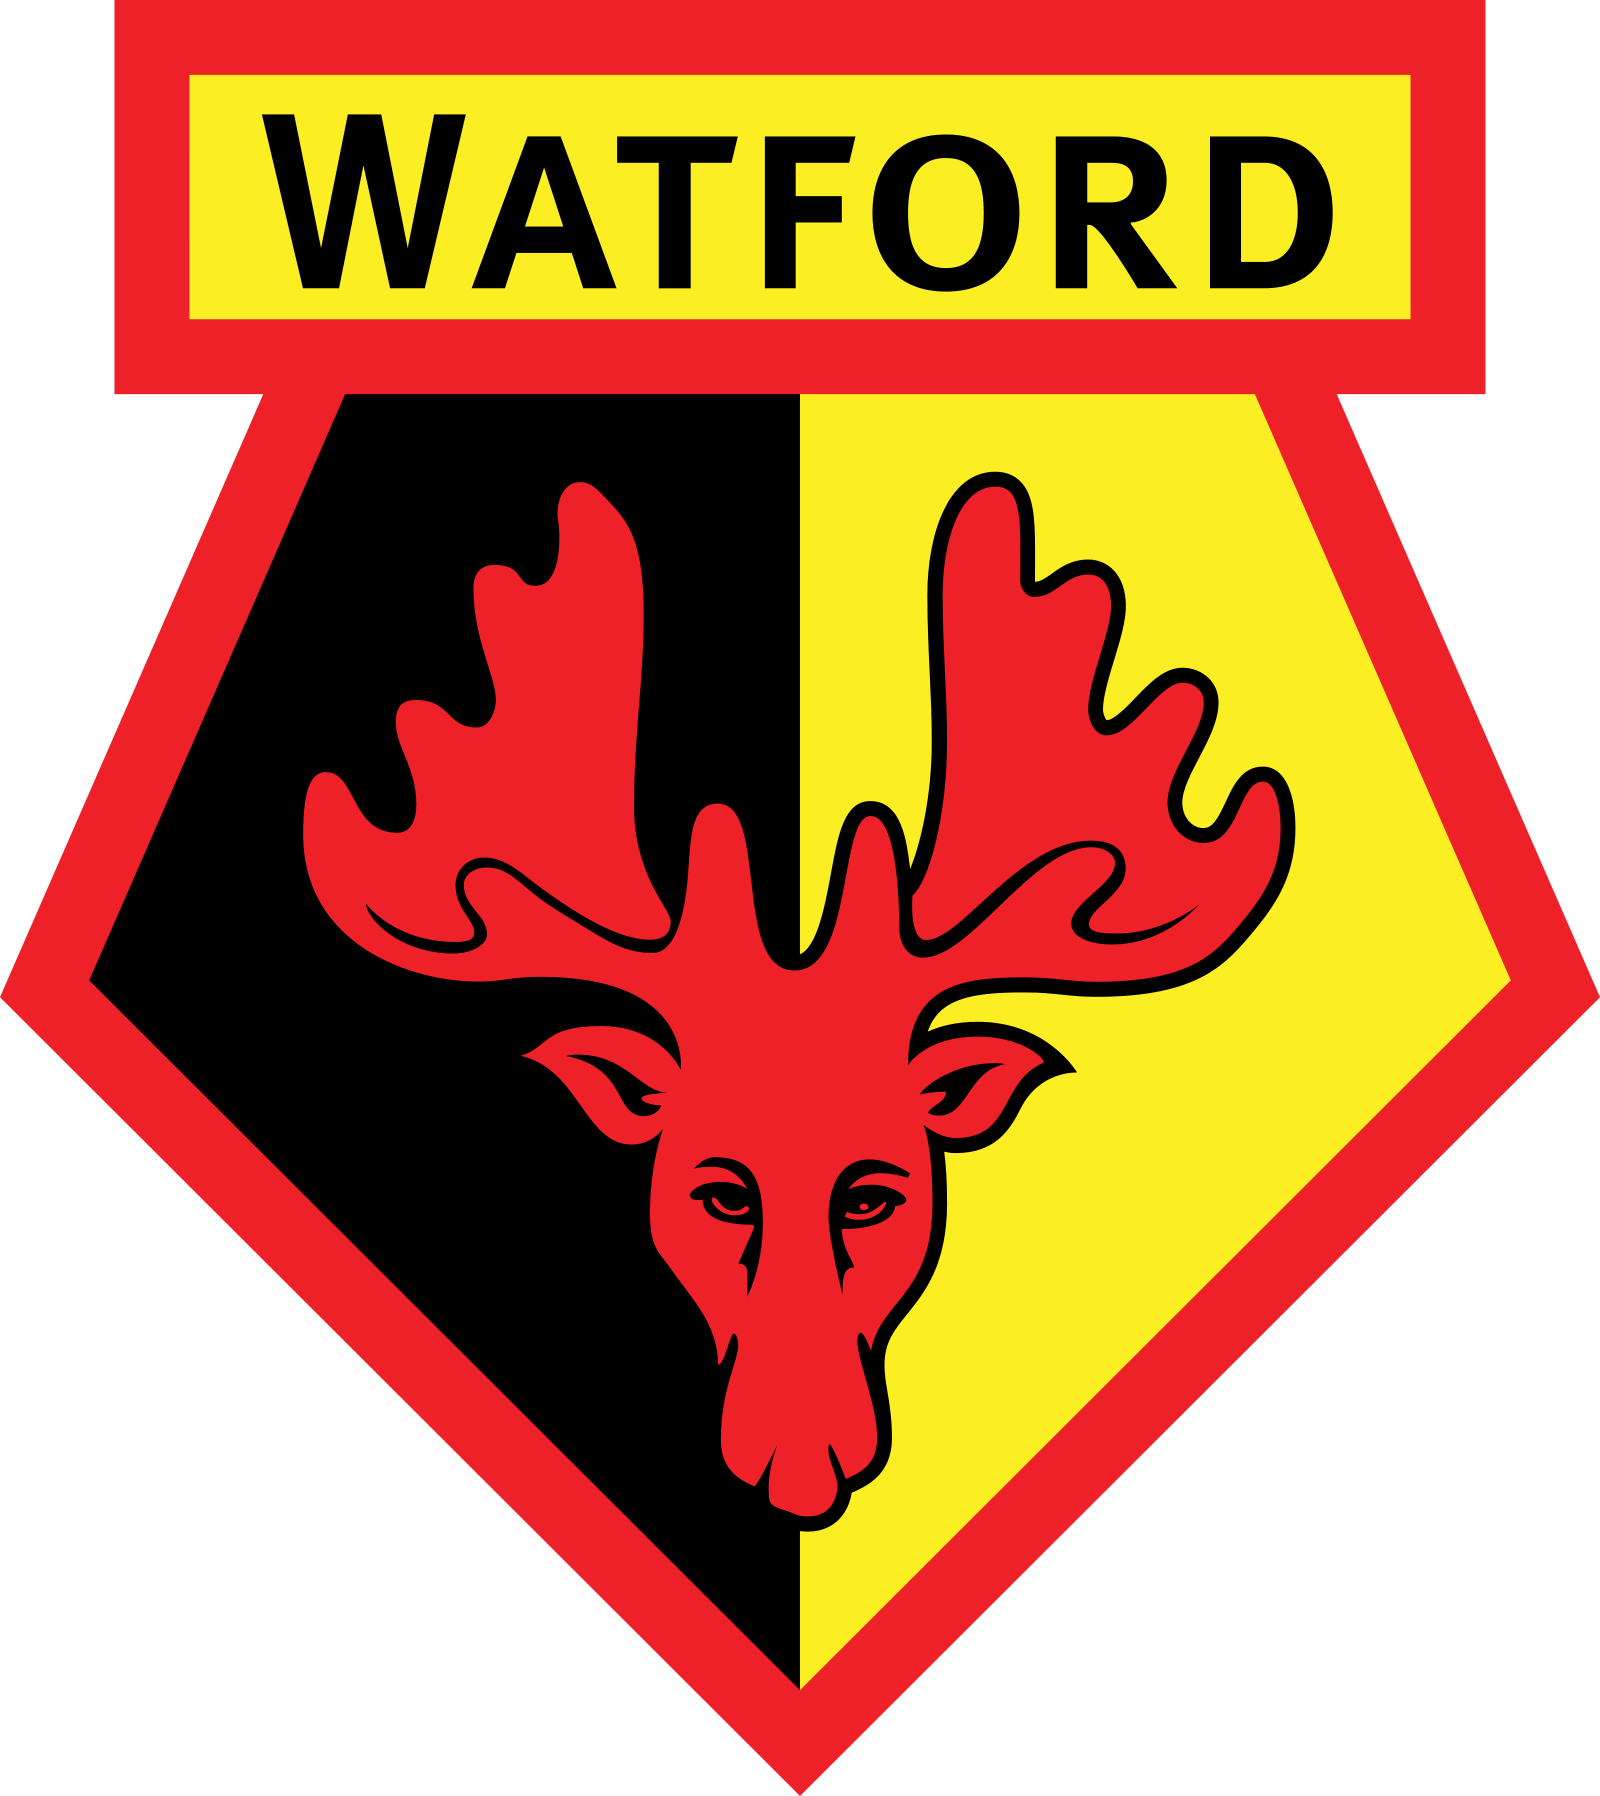 watford logo 2 - Watford Football Club Logo - Badge